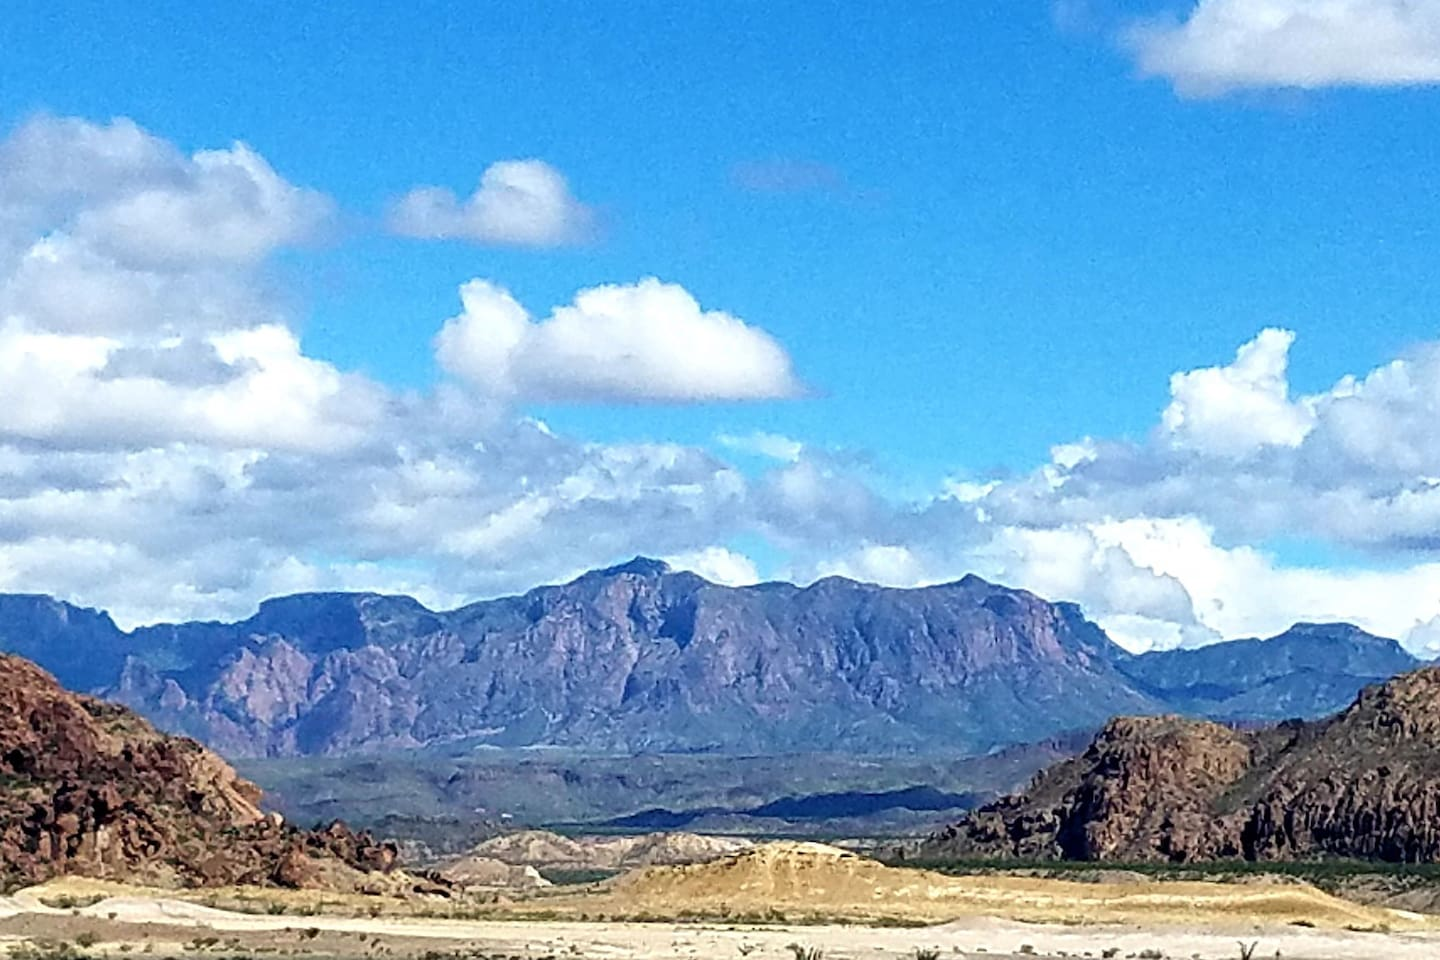 All campsites have this eastern view of the Chisos mountains